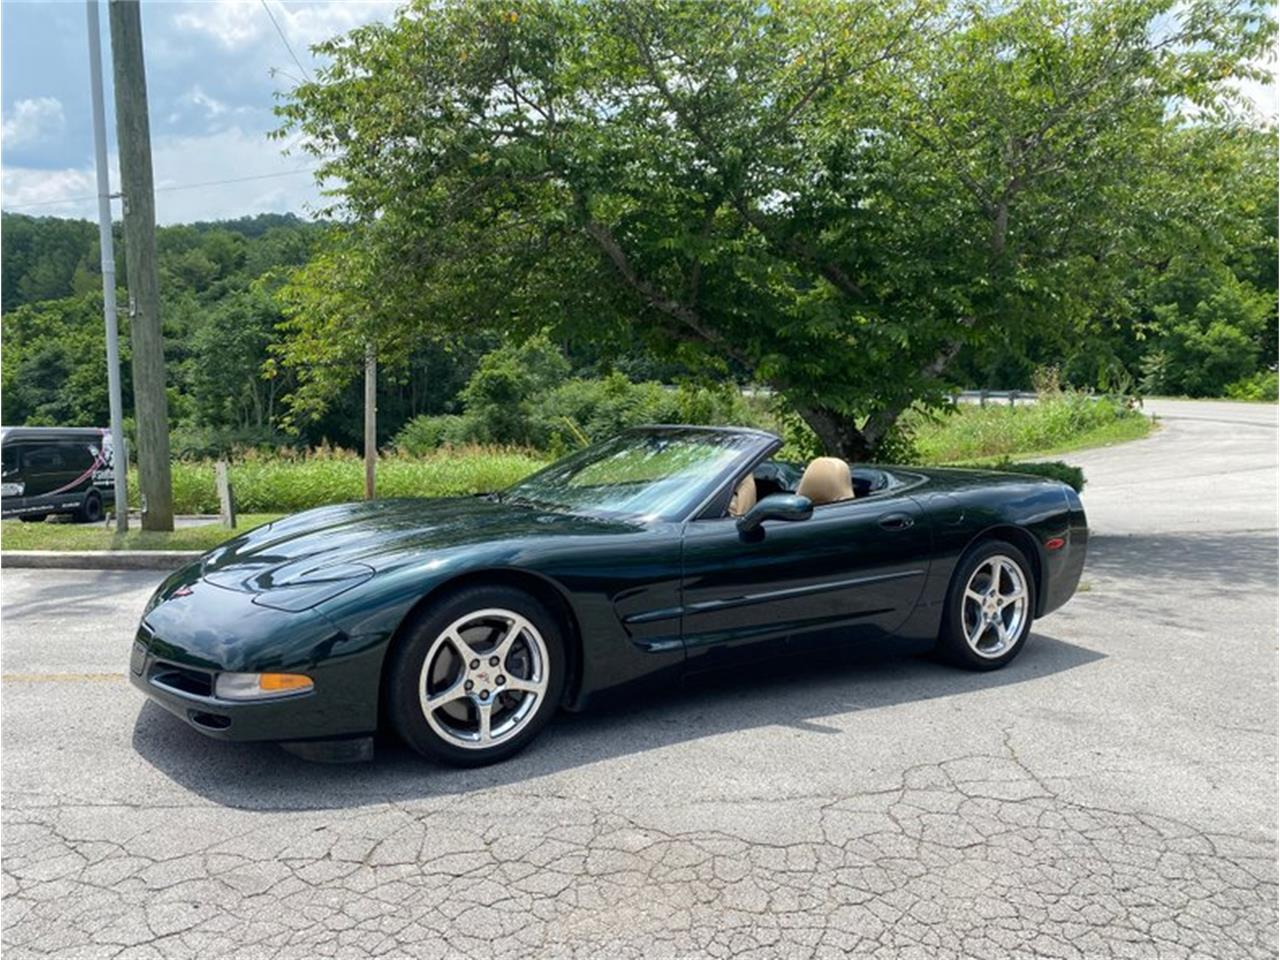 2001 Chevrolet Corvette (CC-1363405) for sale in Cookeville, Tennessee